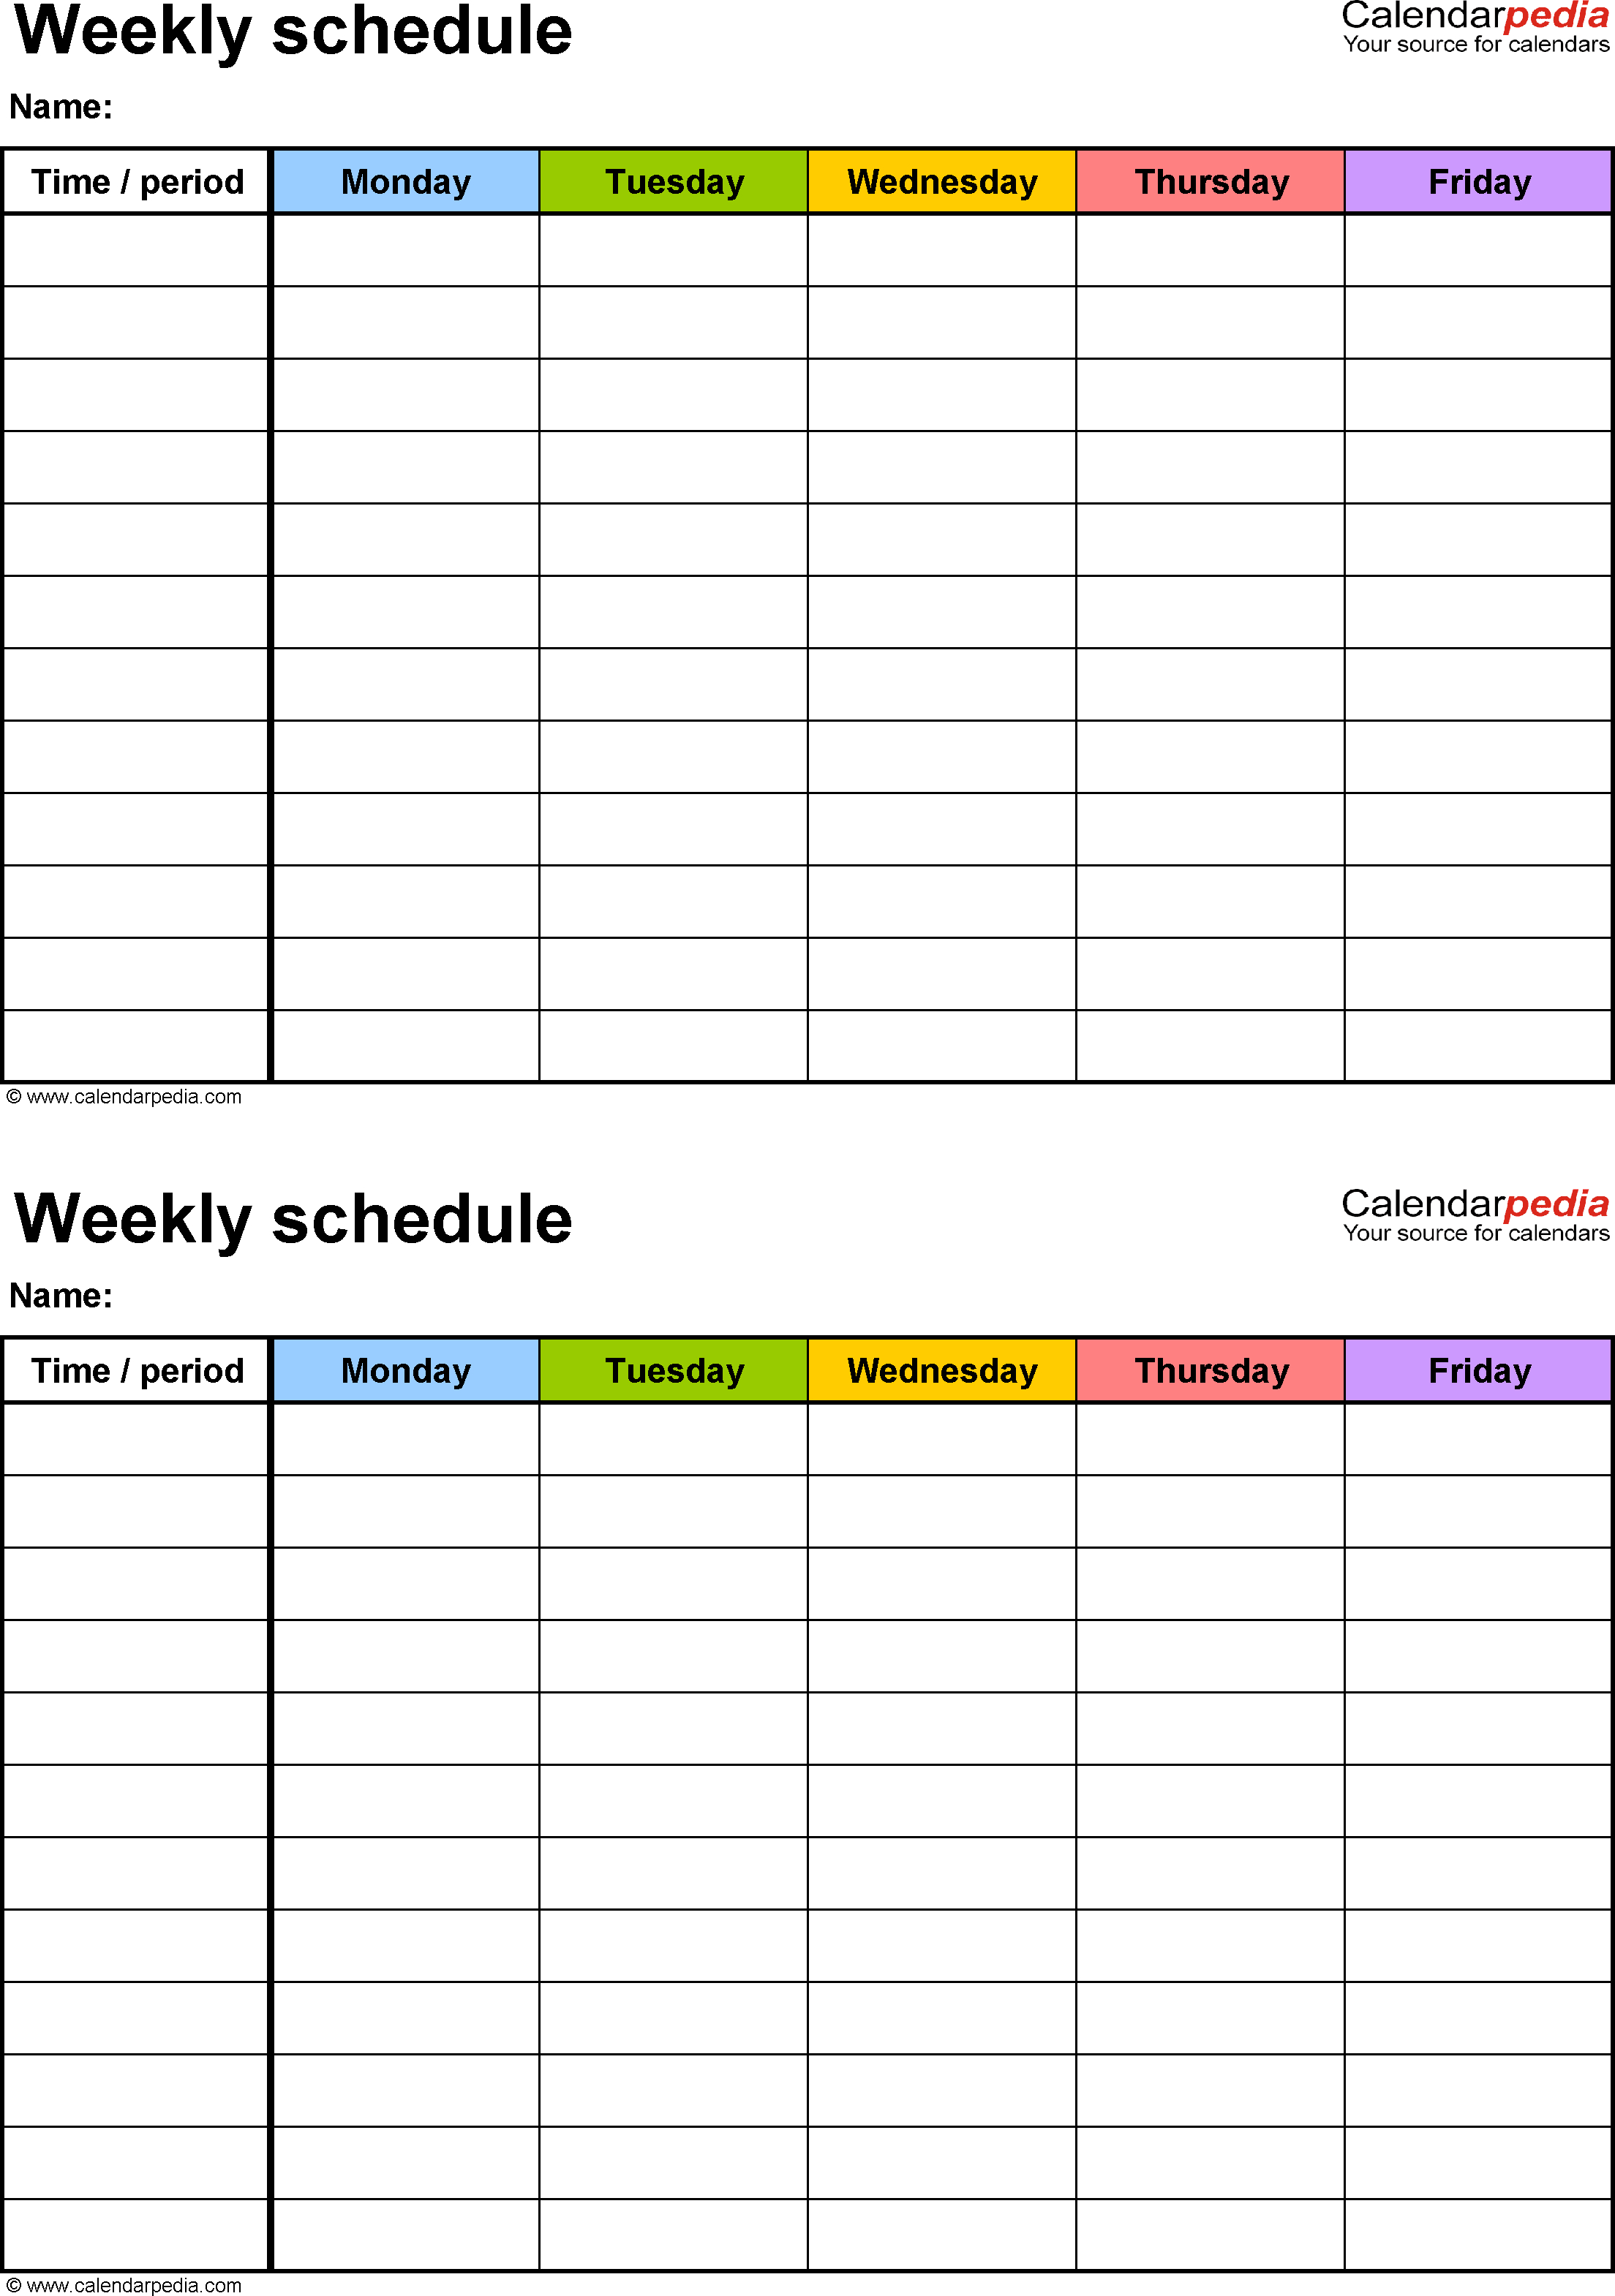 Free Weekly Schedule Templates For Word - 18 Templates with regard to Monday To Friday Timetable Template